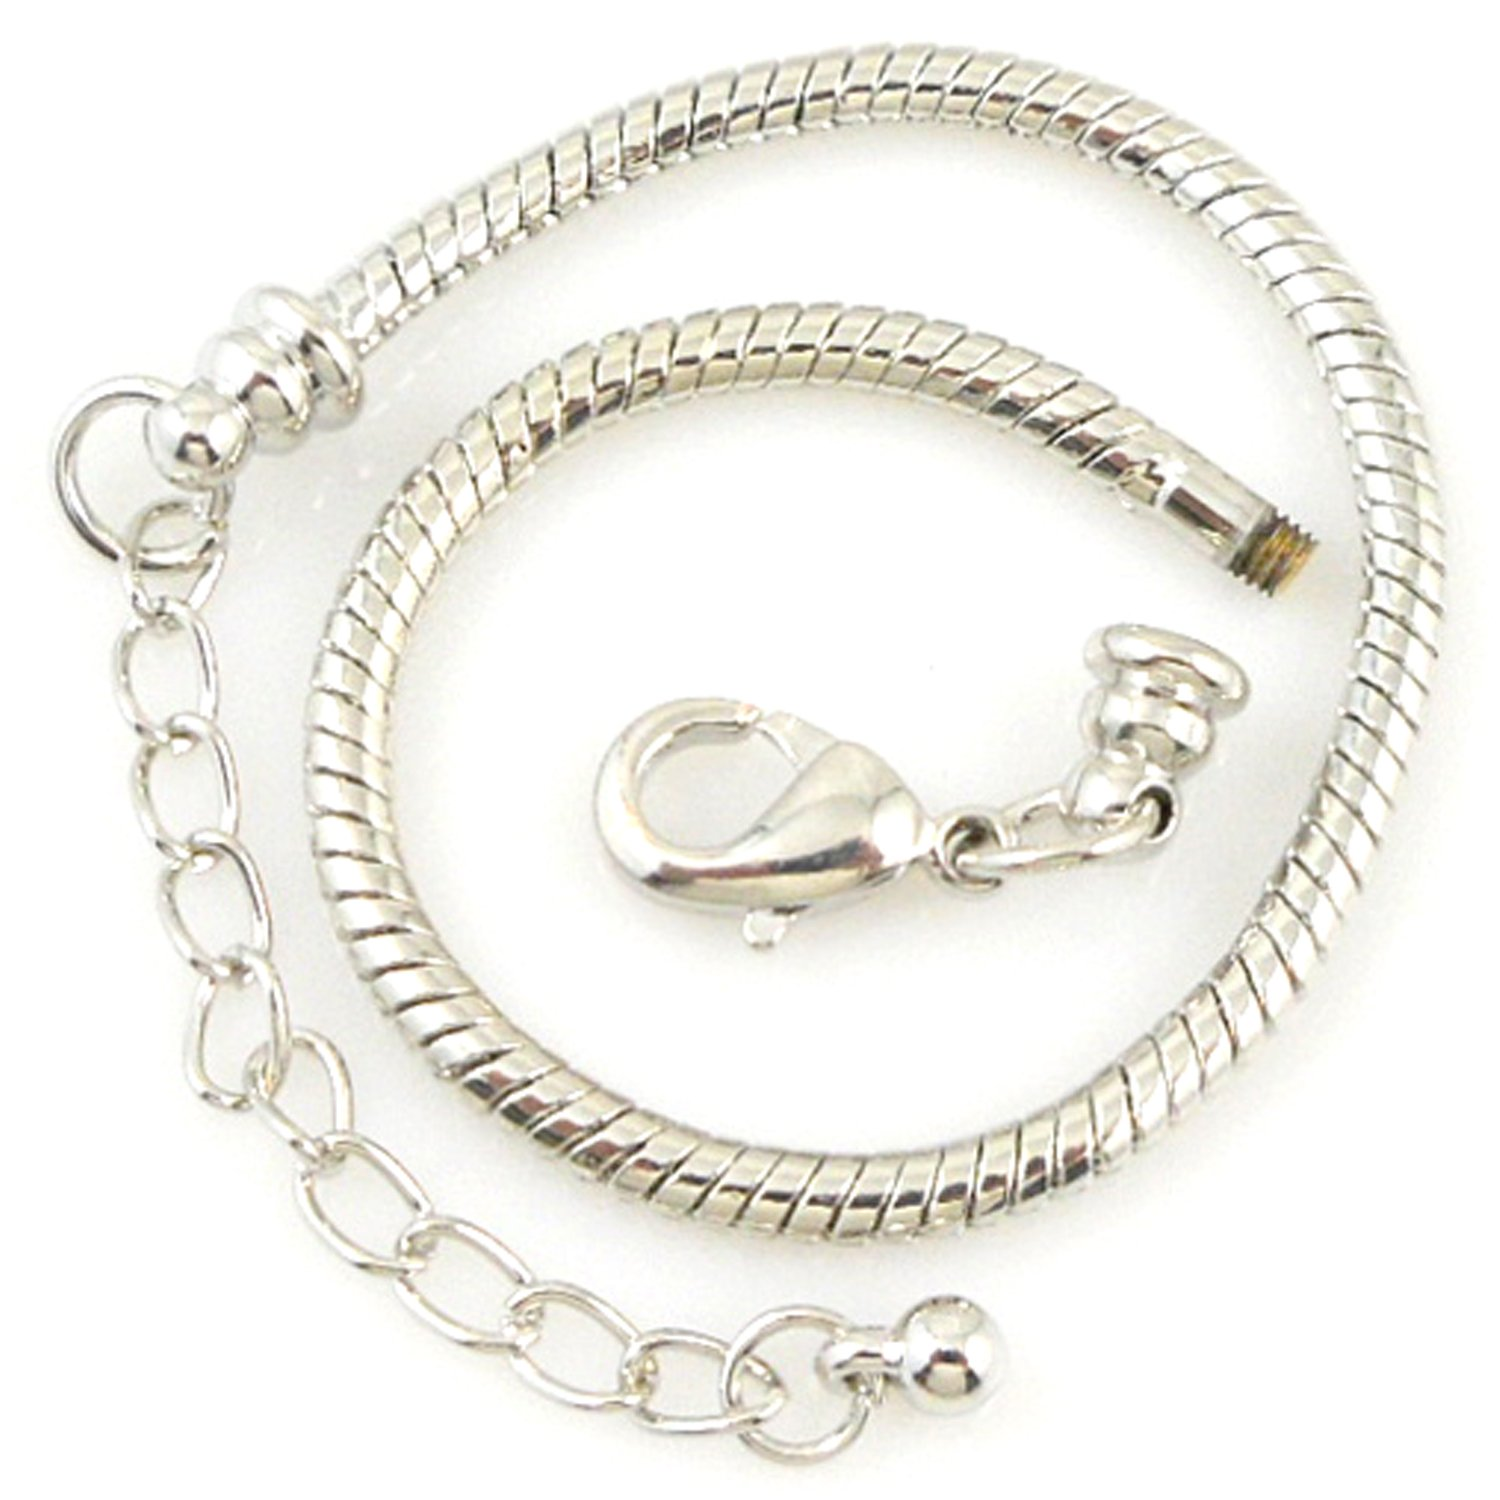 RUBYCA 5pcs White Silver Plated Lobster European Style Snake Chain Bracelet fit Charm Beads 7.5''